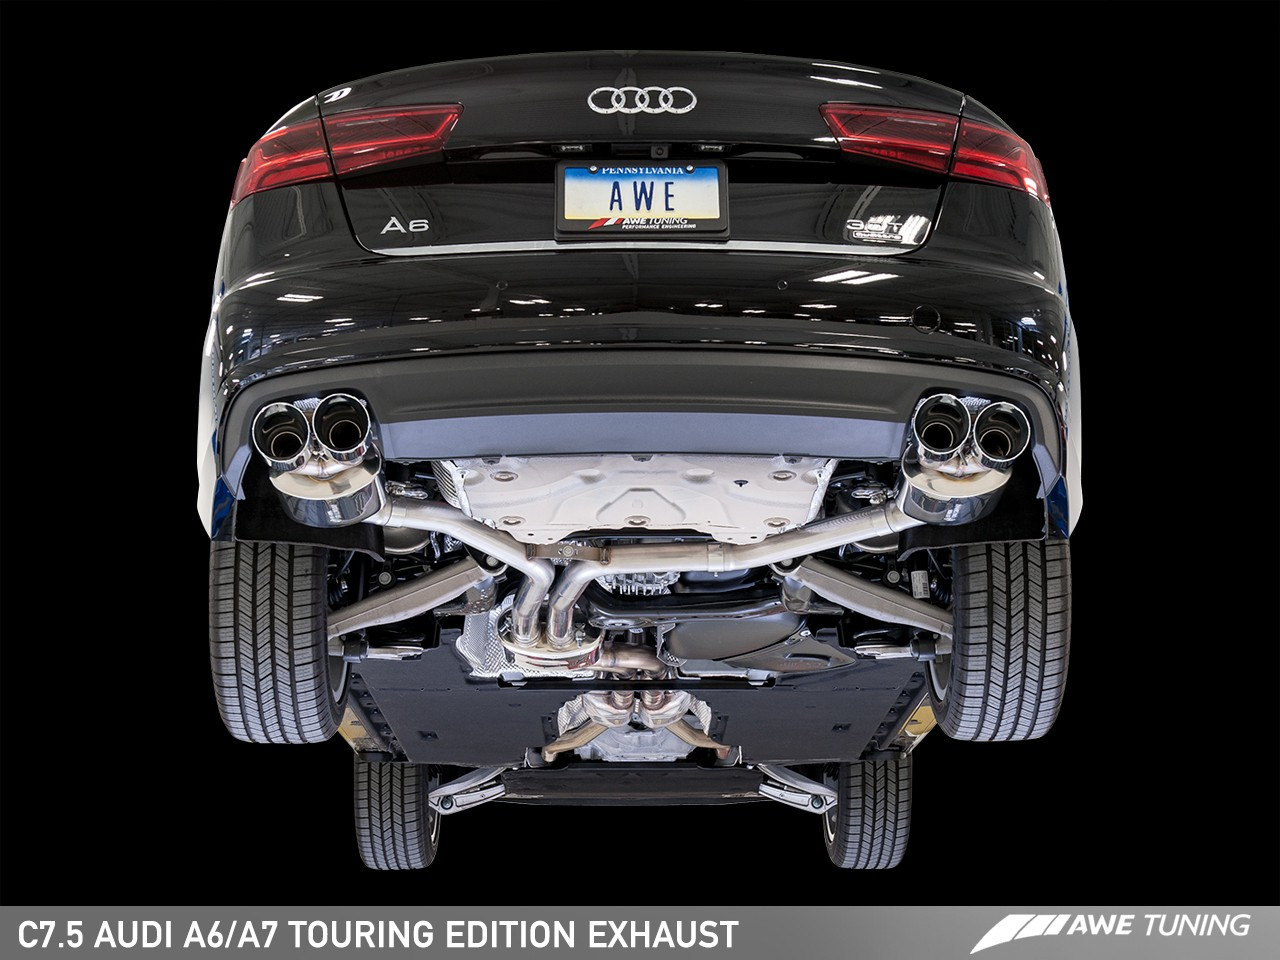 Audi A6 C7 Interior >> AWE Tuning C7.5 Audi A6 3.0T Touring Edition Exhaust